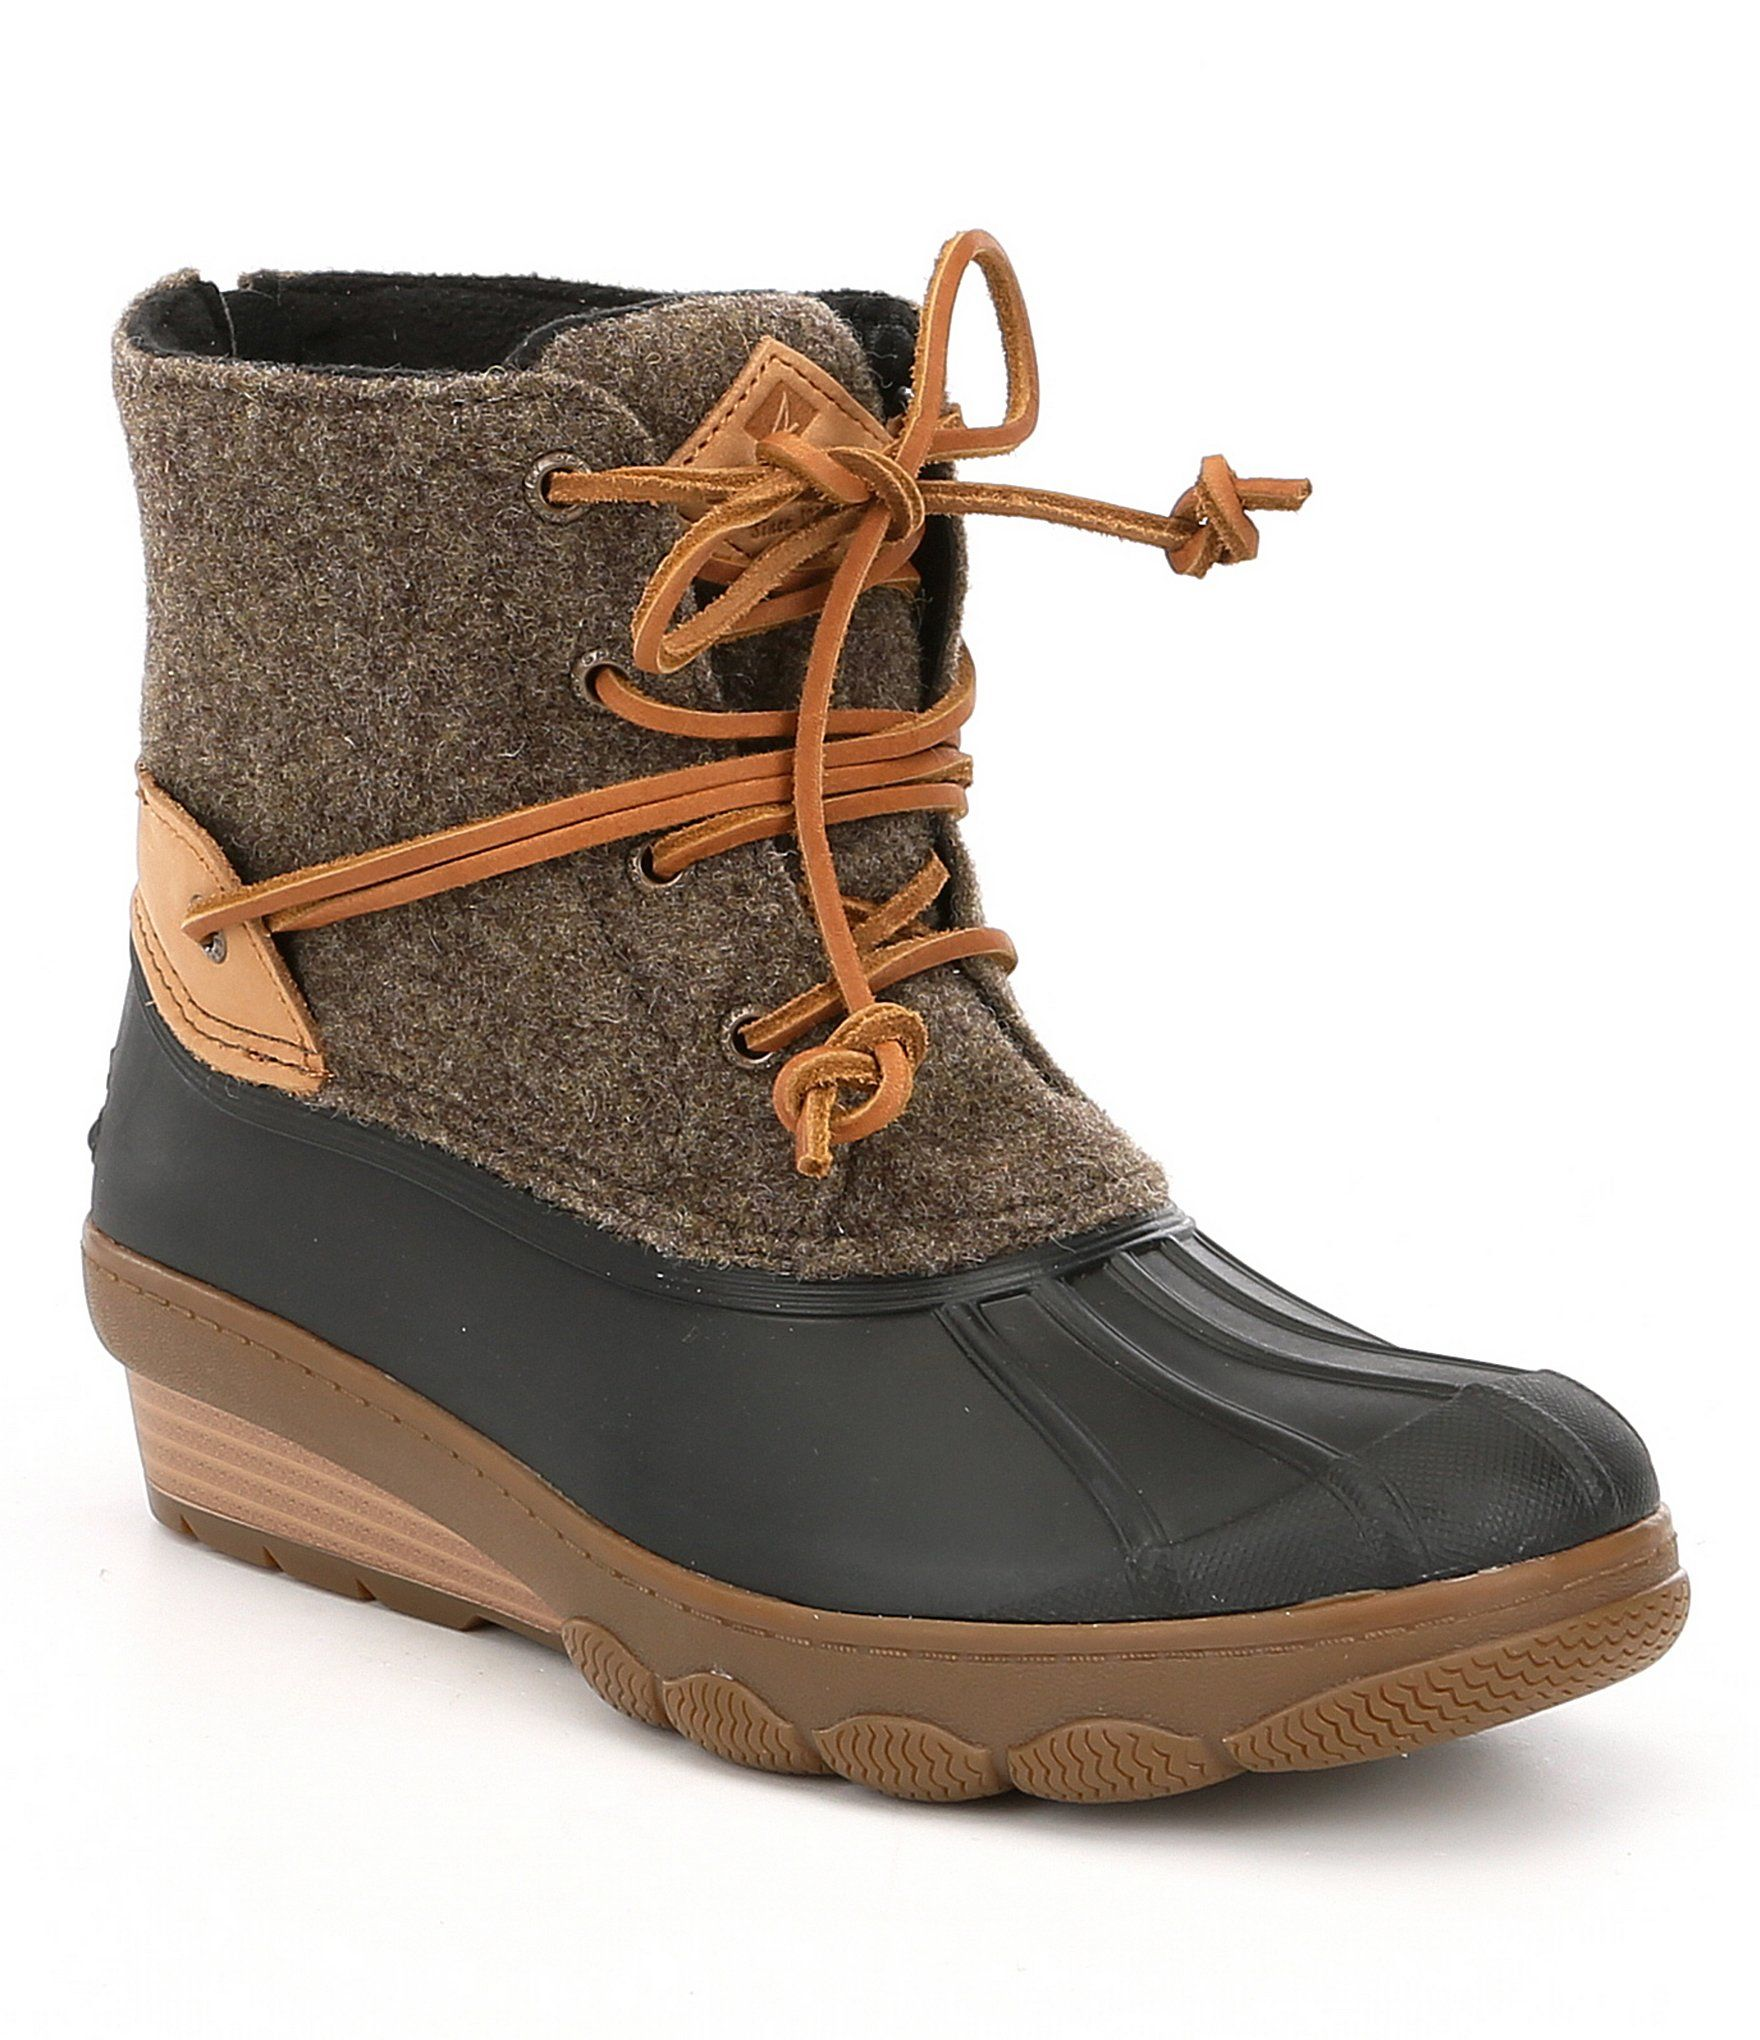 e4ce20cb4677 Shop for Sperry Saltwater Wedge Tide Wool Duck Boots at Dillards.com. Visit  Dillards.com to find clothing